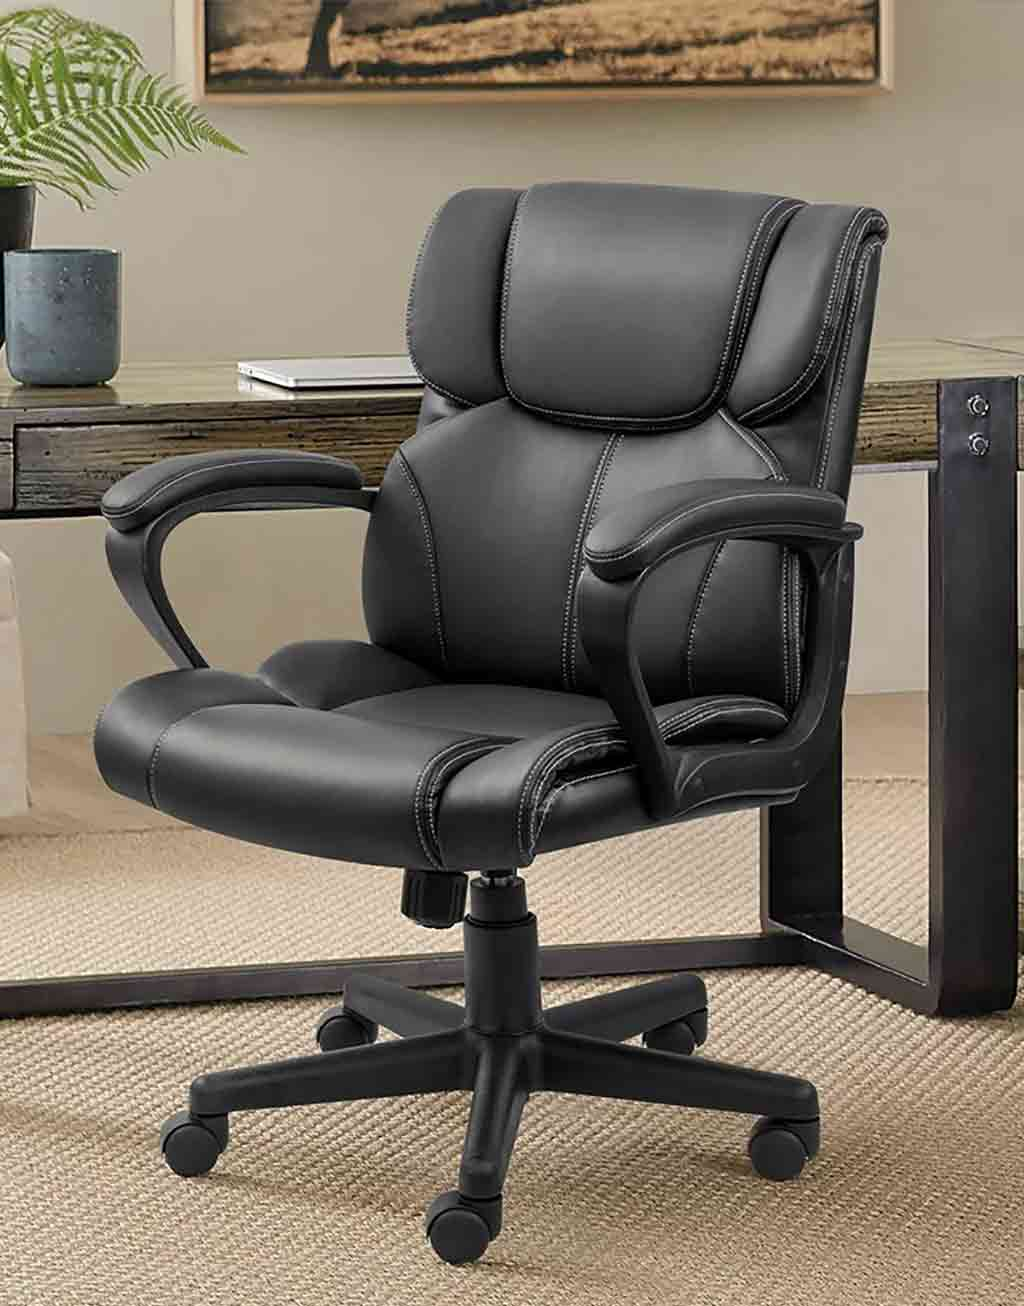 Best Chairs for Studying 5